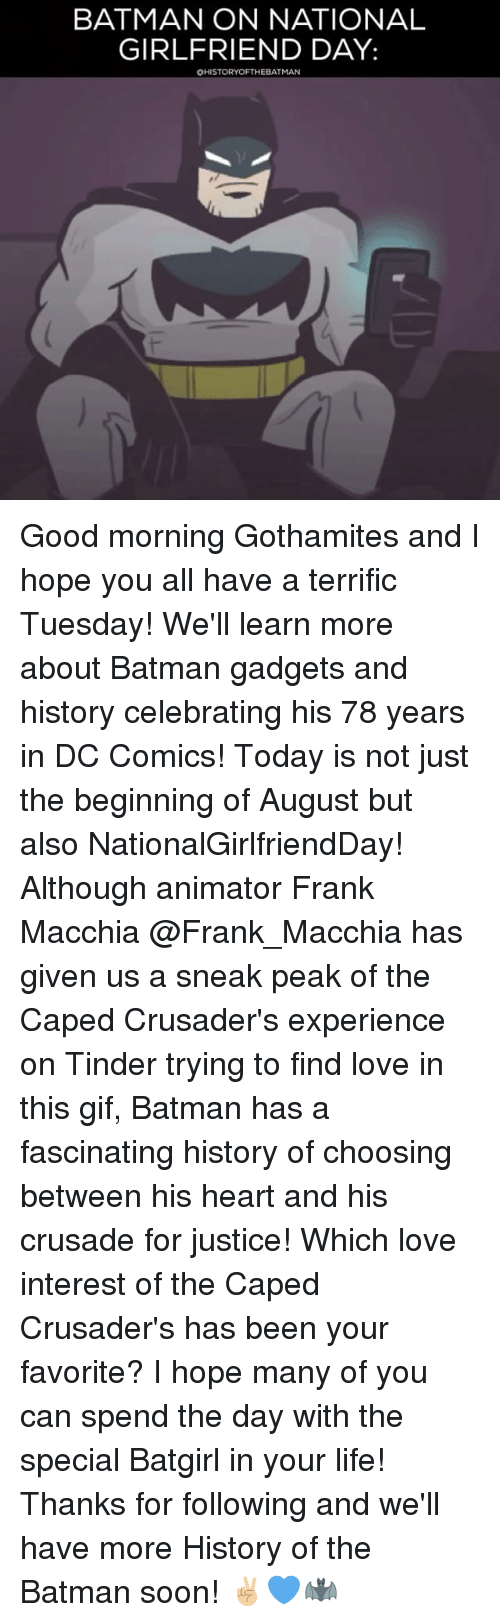 Batman, Gif, and Life: BATMAN ON NATIONAL  GIRLFRIEND DAY:  OHISTORYOFTHEBATMAN Good morning Gothamites and I hope you all have a terrific Tuesday! We'll learn more about Batman gadgets and history celebrating his 78 years in DC Comics! Today is not just the beginning of August but also NationalGirlfriendDay! Although animator Frank Macchia @Frank_Macchia has given us a sneak peak of the Caped Crusader's experience on Tinder trying to find love in this gif, Batman has a fascinating history of choosing between his heart and his crusade for justice! Which love interest of the Caped Crusader's has been your favorite? I hope many of you can spend the day with the special Batgirl in your life! Thanks for following and we'll have more History of the Batman soon! ✌🏼💙🦇